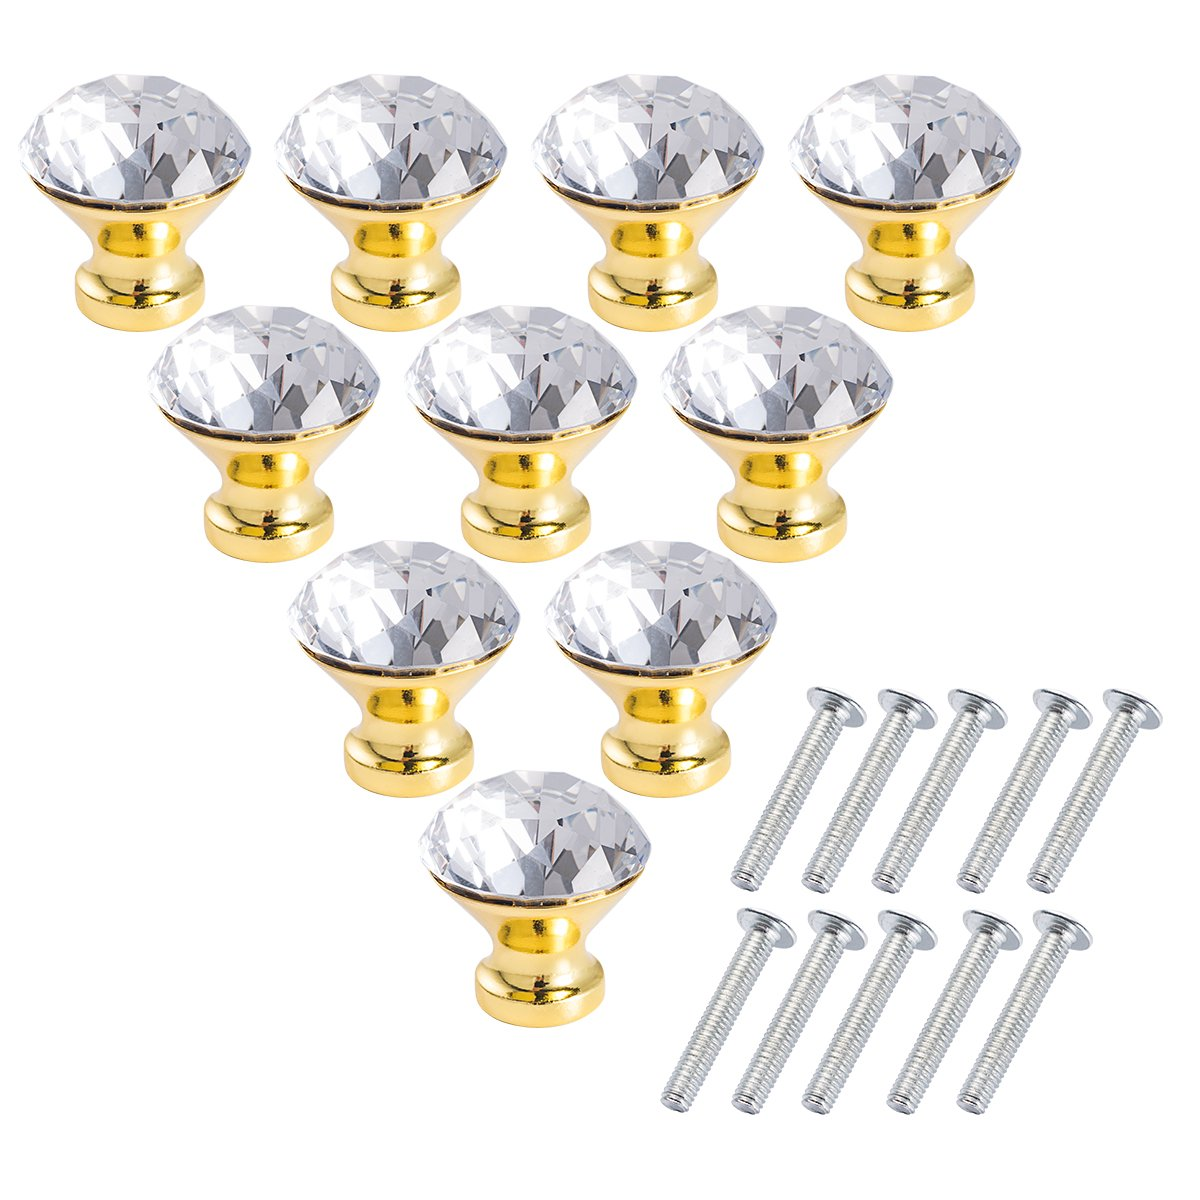 Crystal Glass Cabinet Knobs - LONGWIN 10pcs 30mm crystal Dresser Cupboard Drawer handles (Gold) by LONGWIN (Image #7)